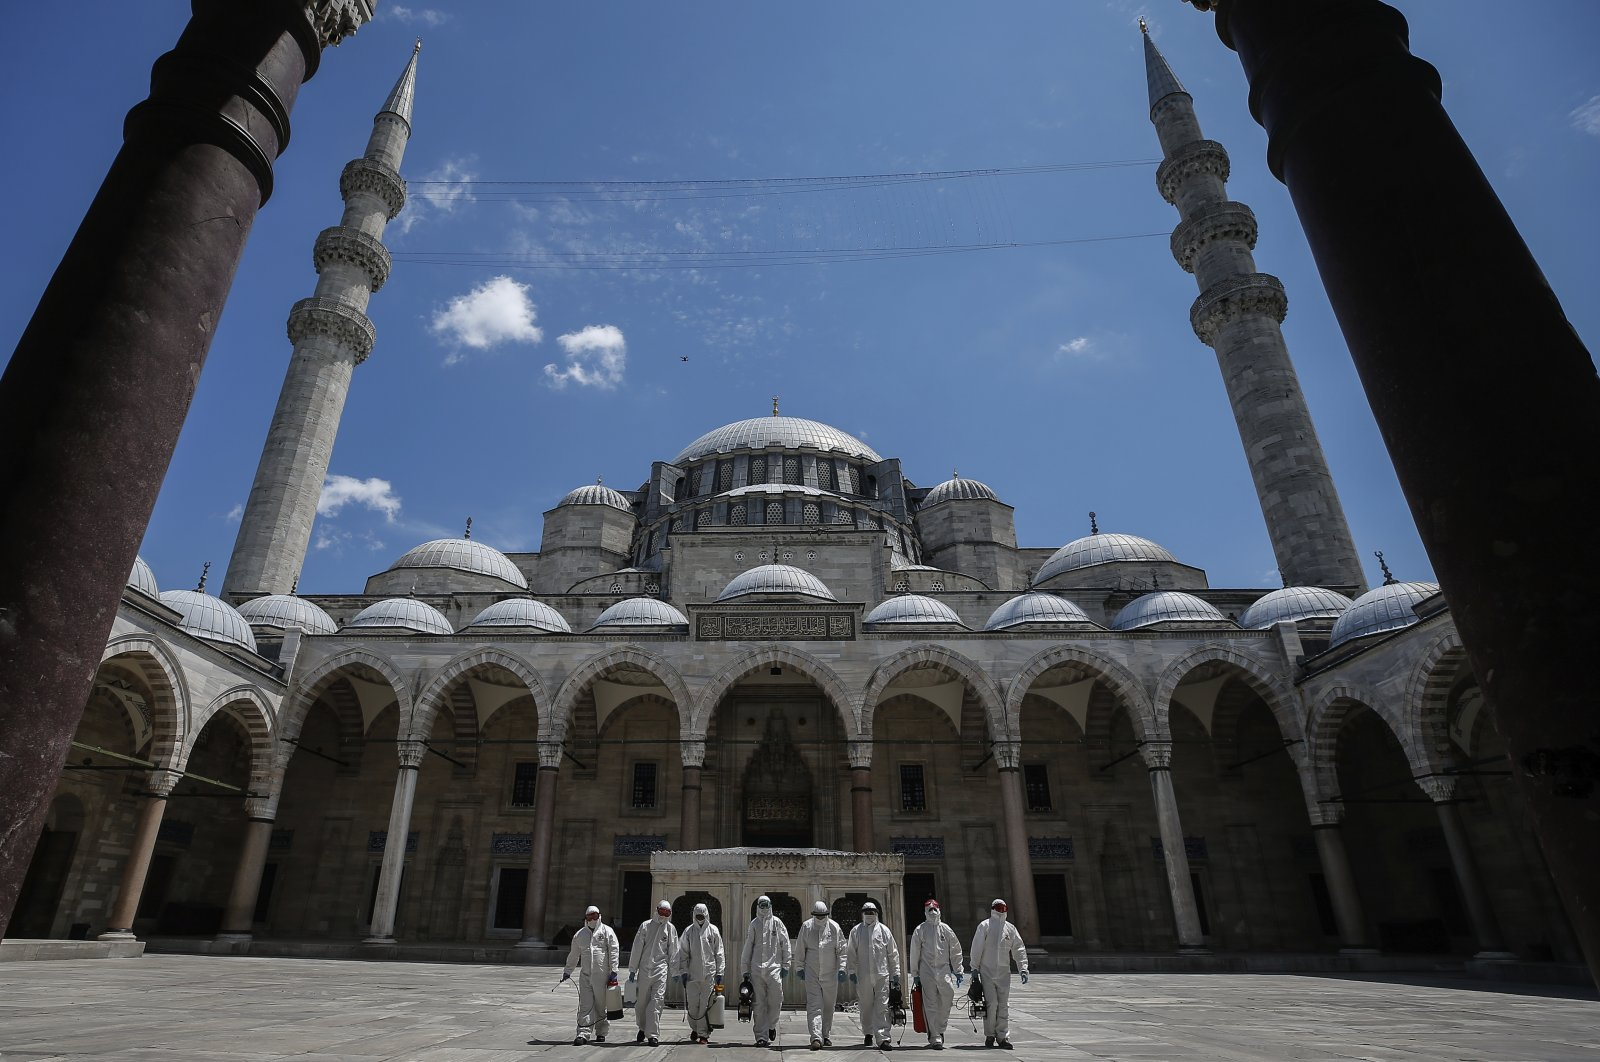 Municipality workers disinfect the grounds of the historical Süleymaniye Mosque, Istanbul, Turkey, May 26, 2020. (AP Photo)